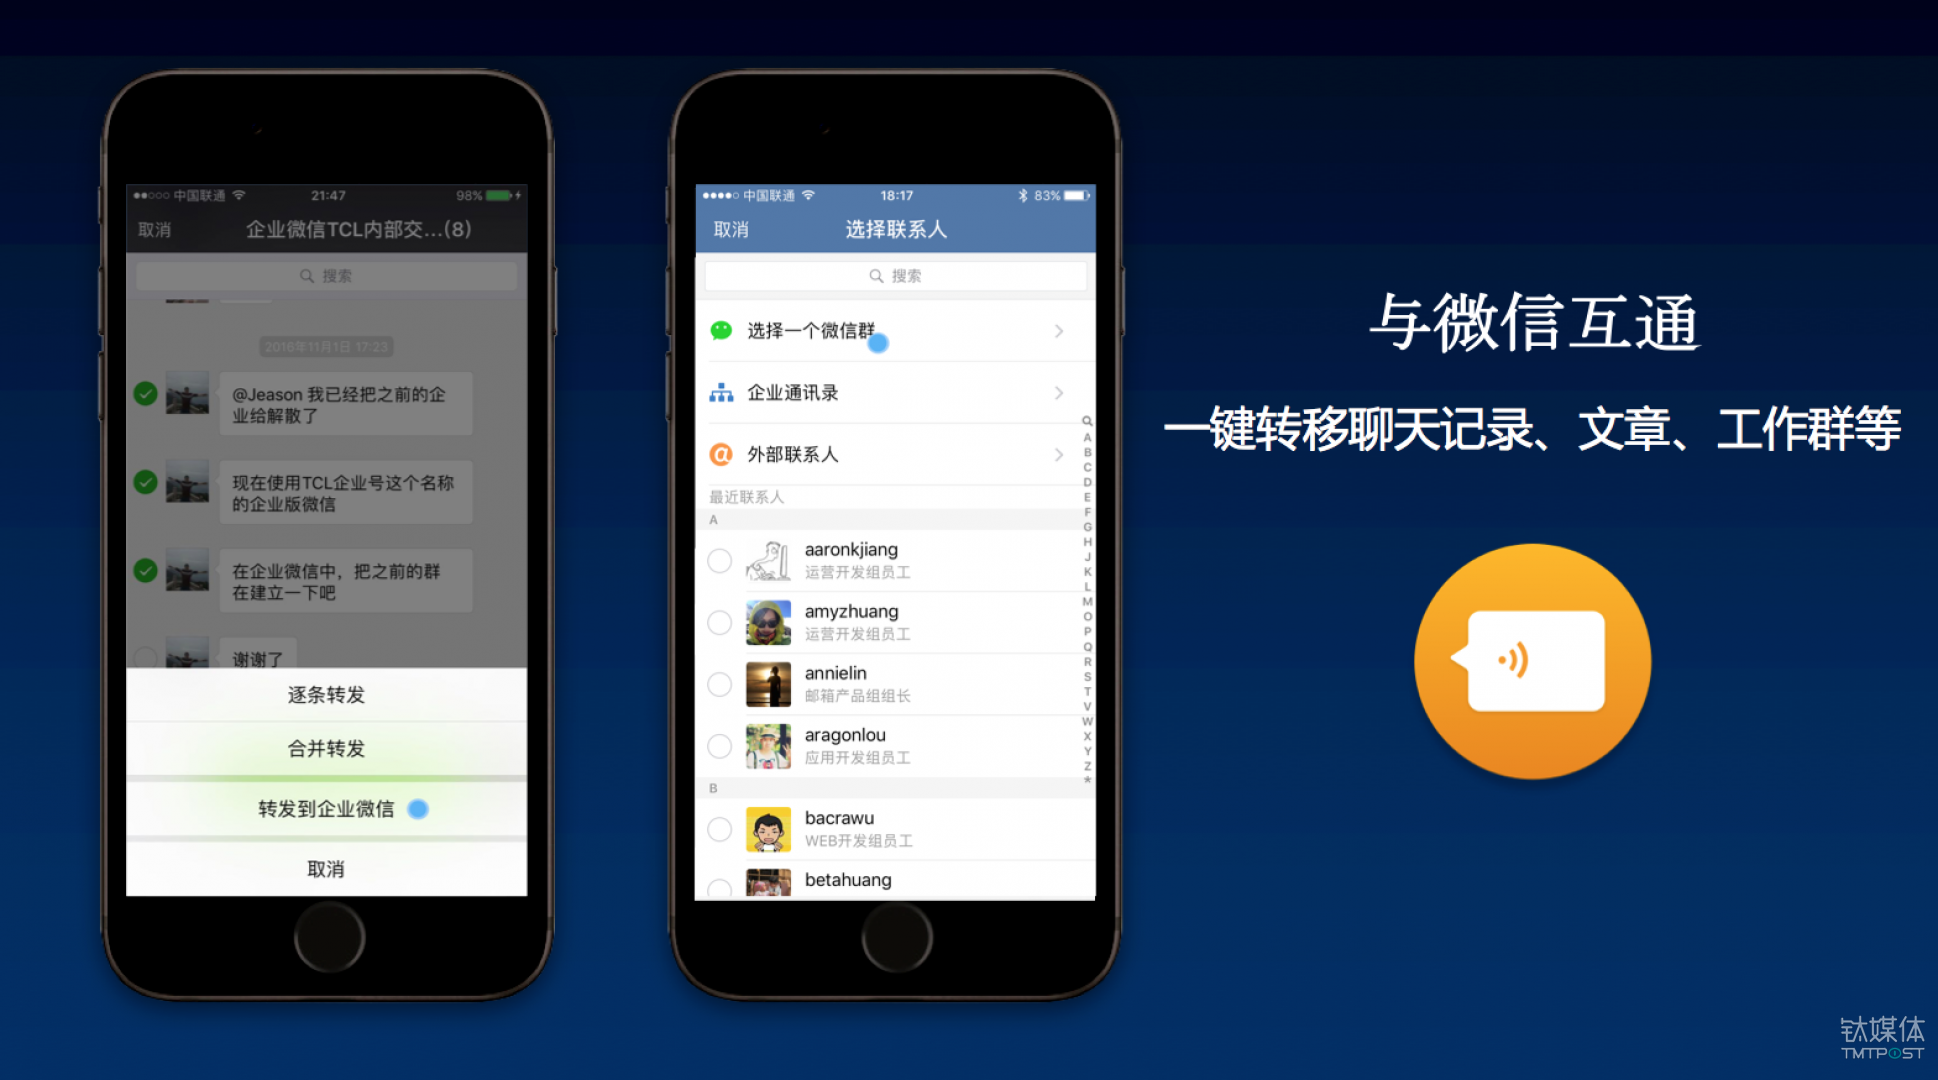 WeChat users already can seamlessly import WeChat chat history, chat groups and contacts into WeChat Enterprise, which naturally brings lots of traffic to WeChat Enterprise.